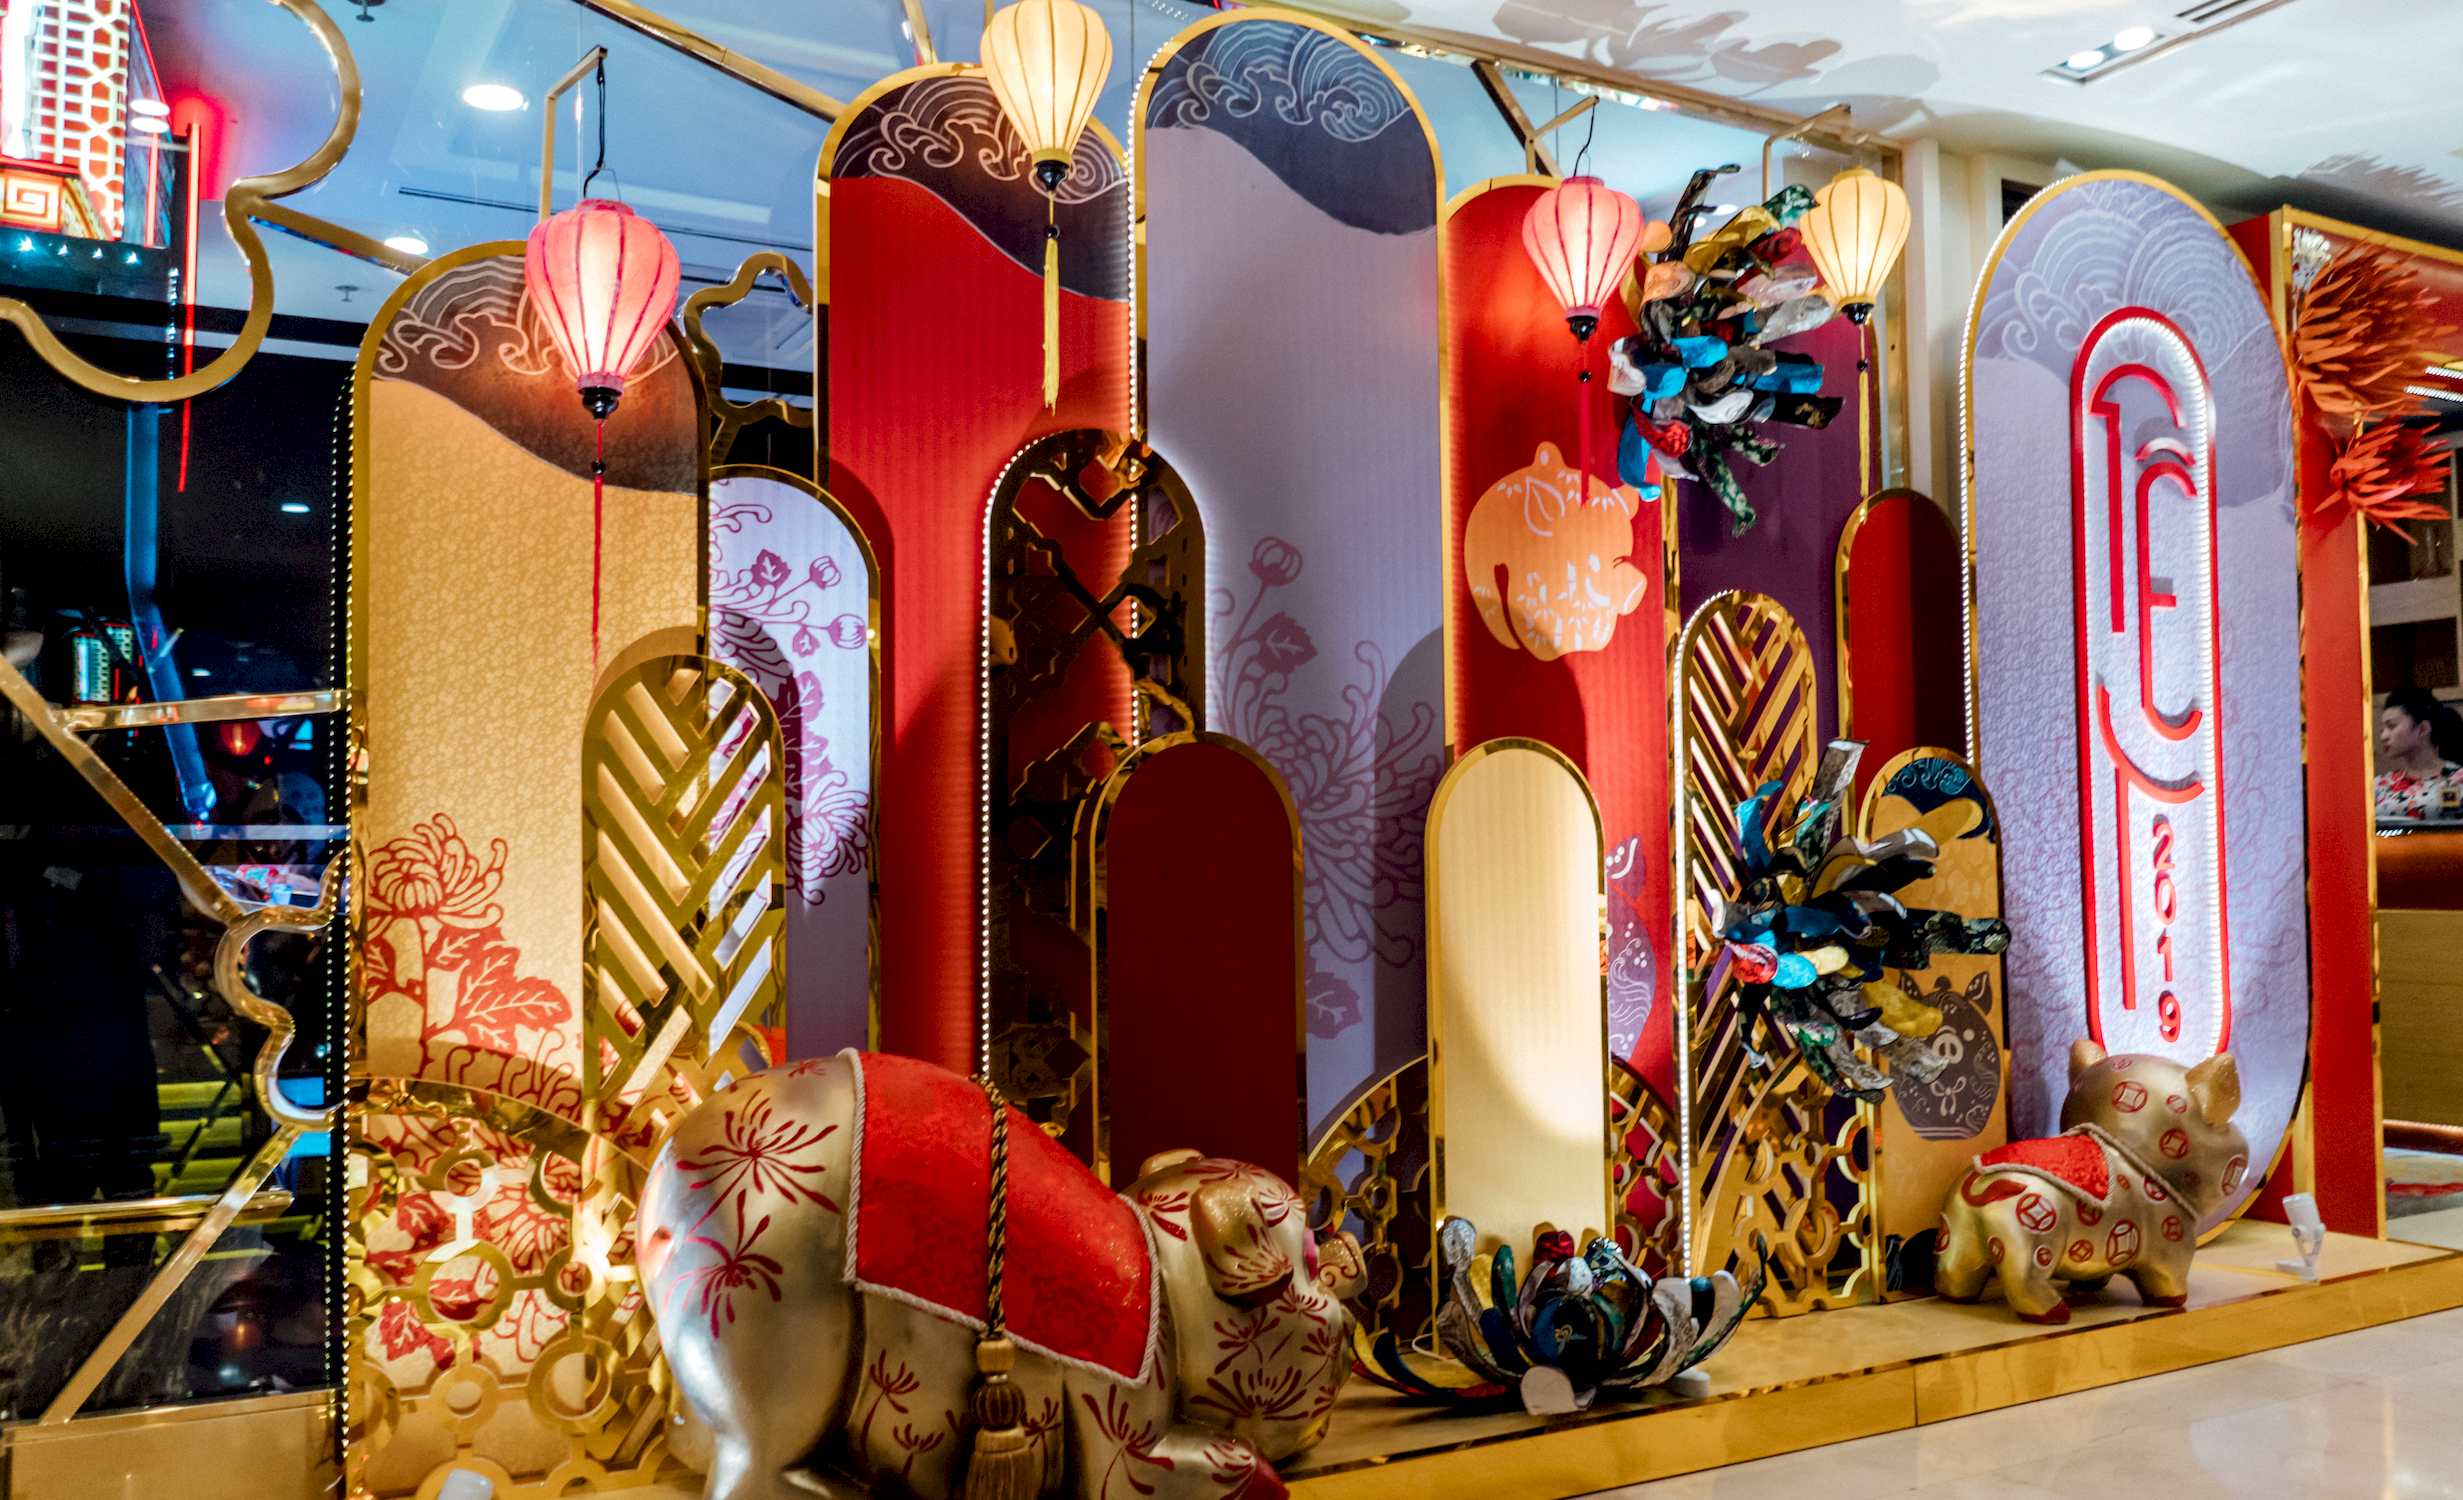 Lunar New Year Decoration Ideas (With images) | Chinese ...